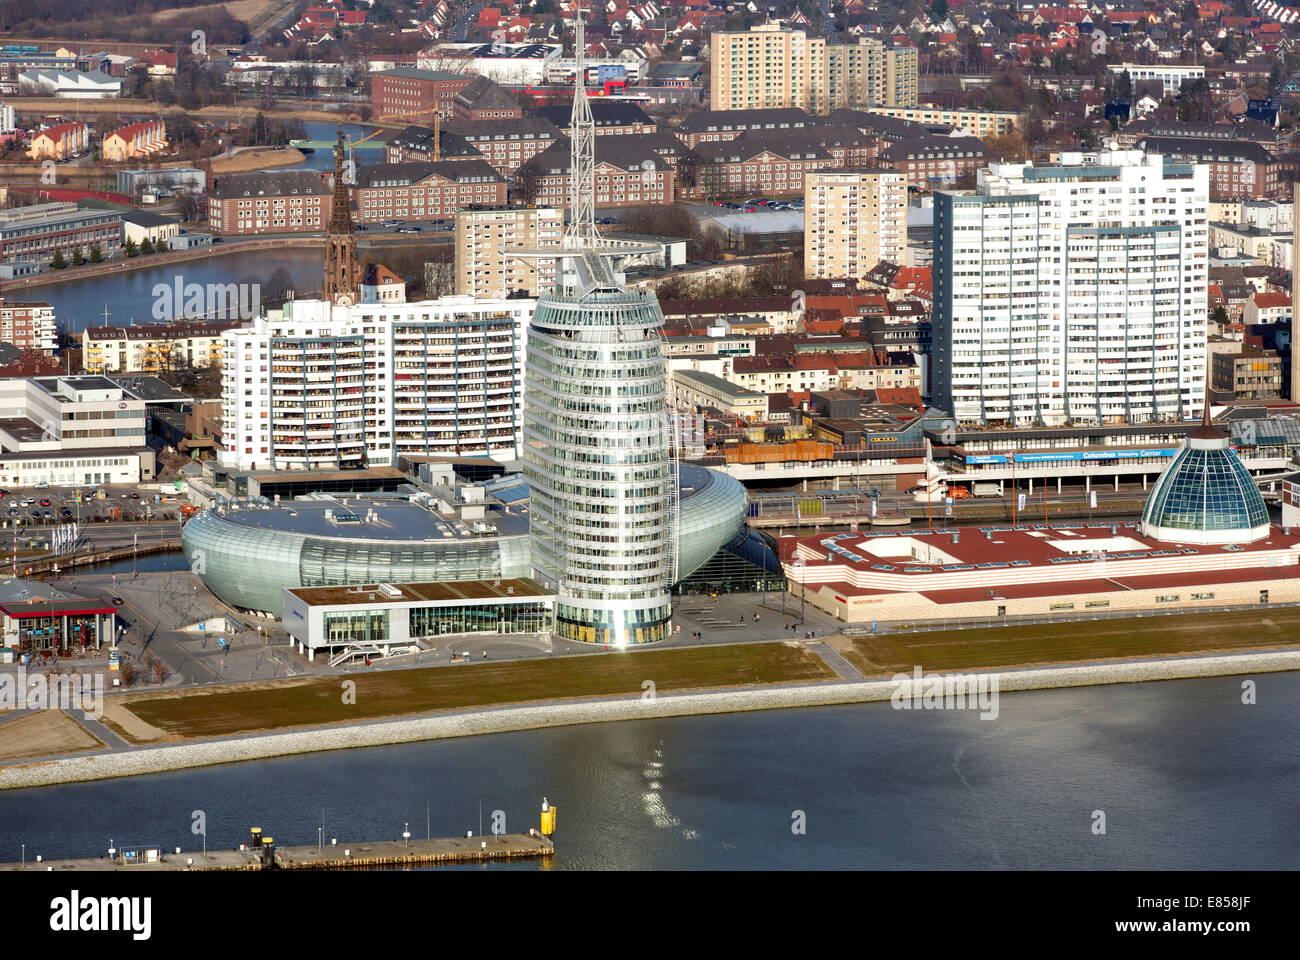 Mediterraneo shopping centre, Atlantic Hotel Sail City, Klimahaus Bremerhaven, Columbus Center, Havenwelten, Weser, - Stock Image